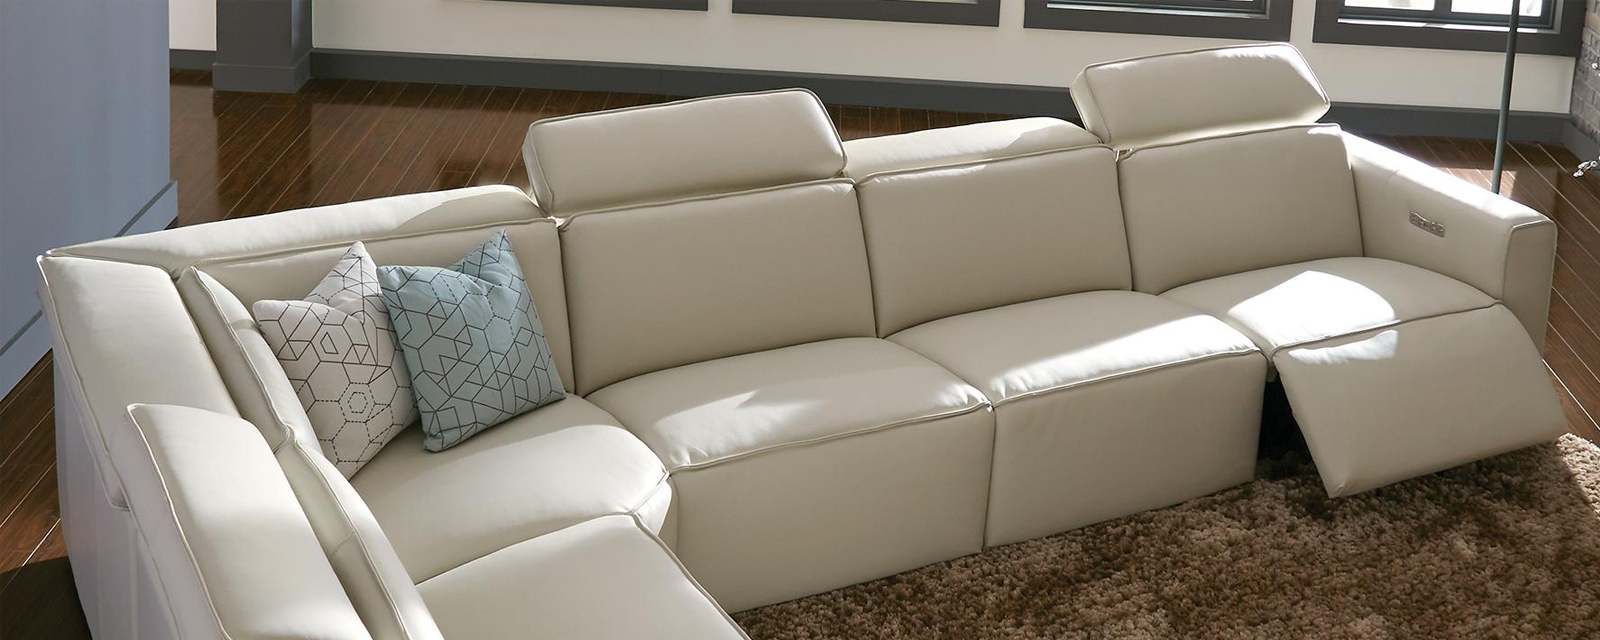 Reclining Furniture Shopping: What to Look For